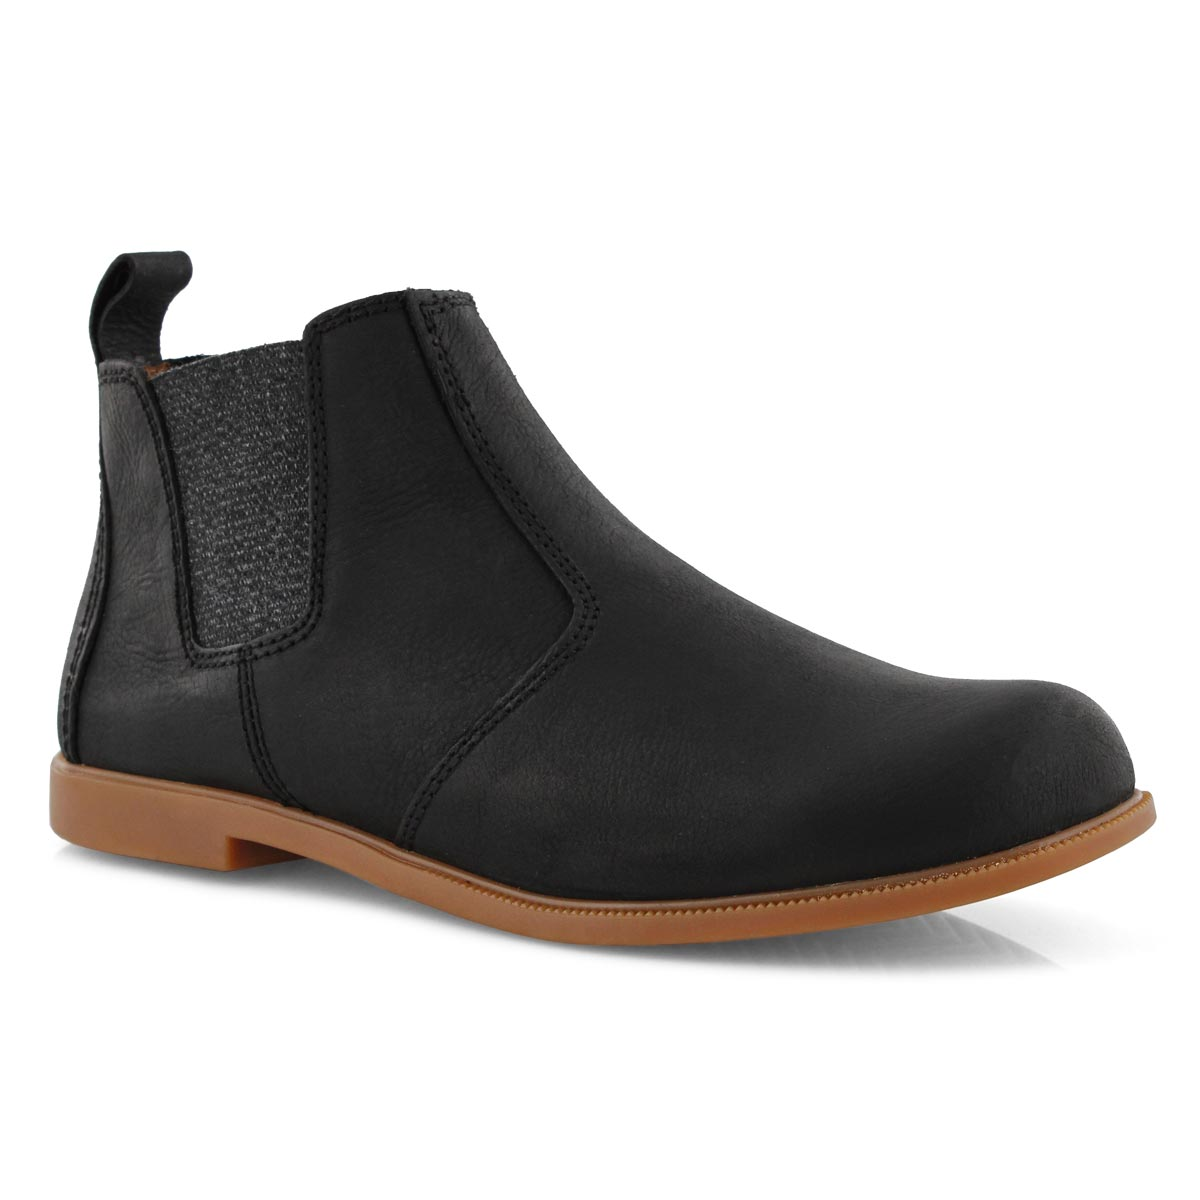 Lds Low-Rider black chelsea boot